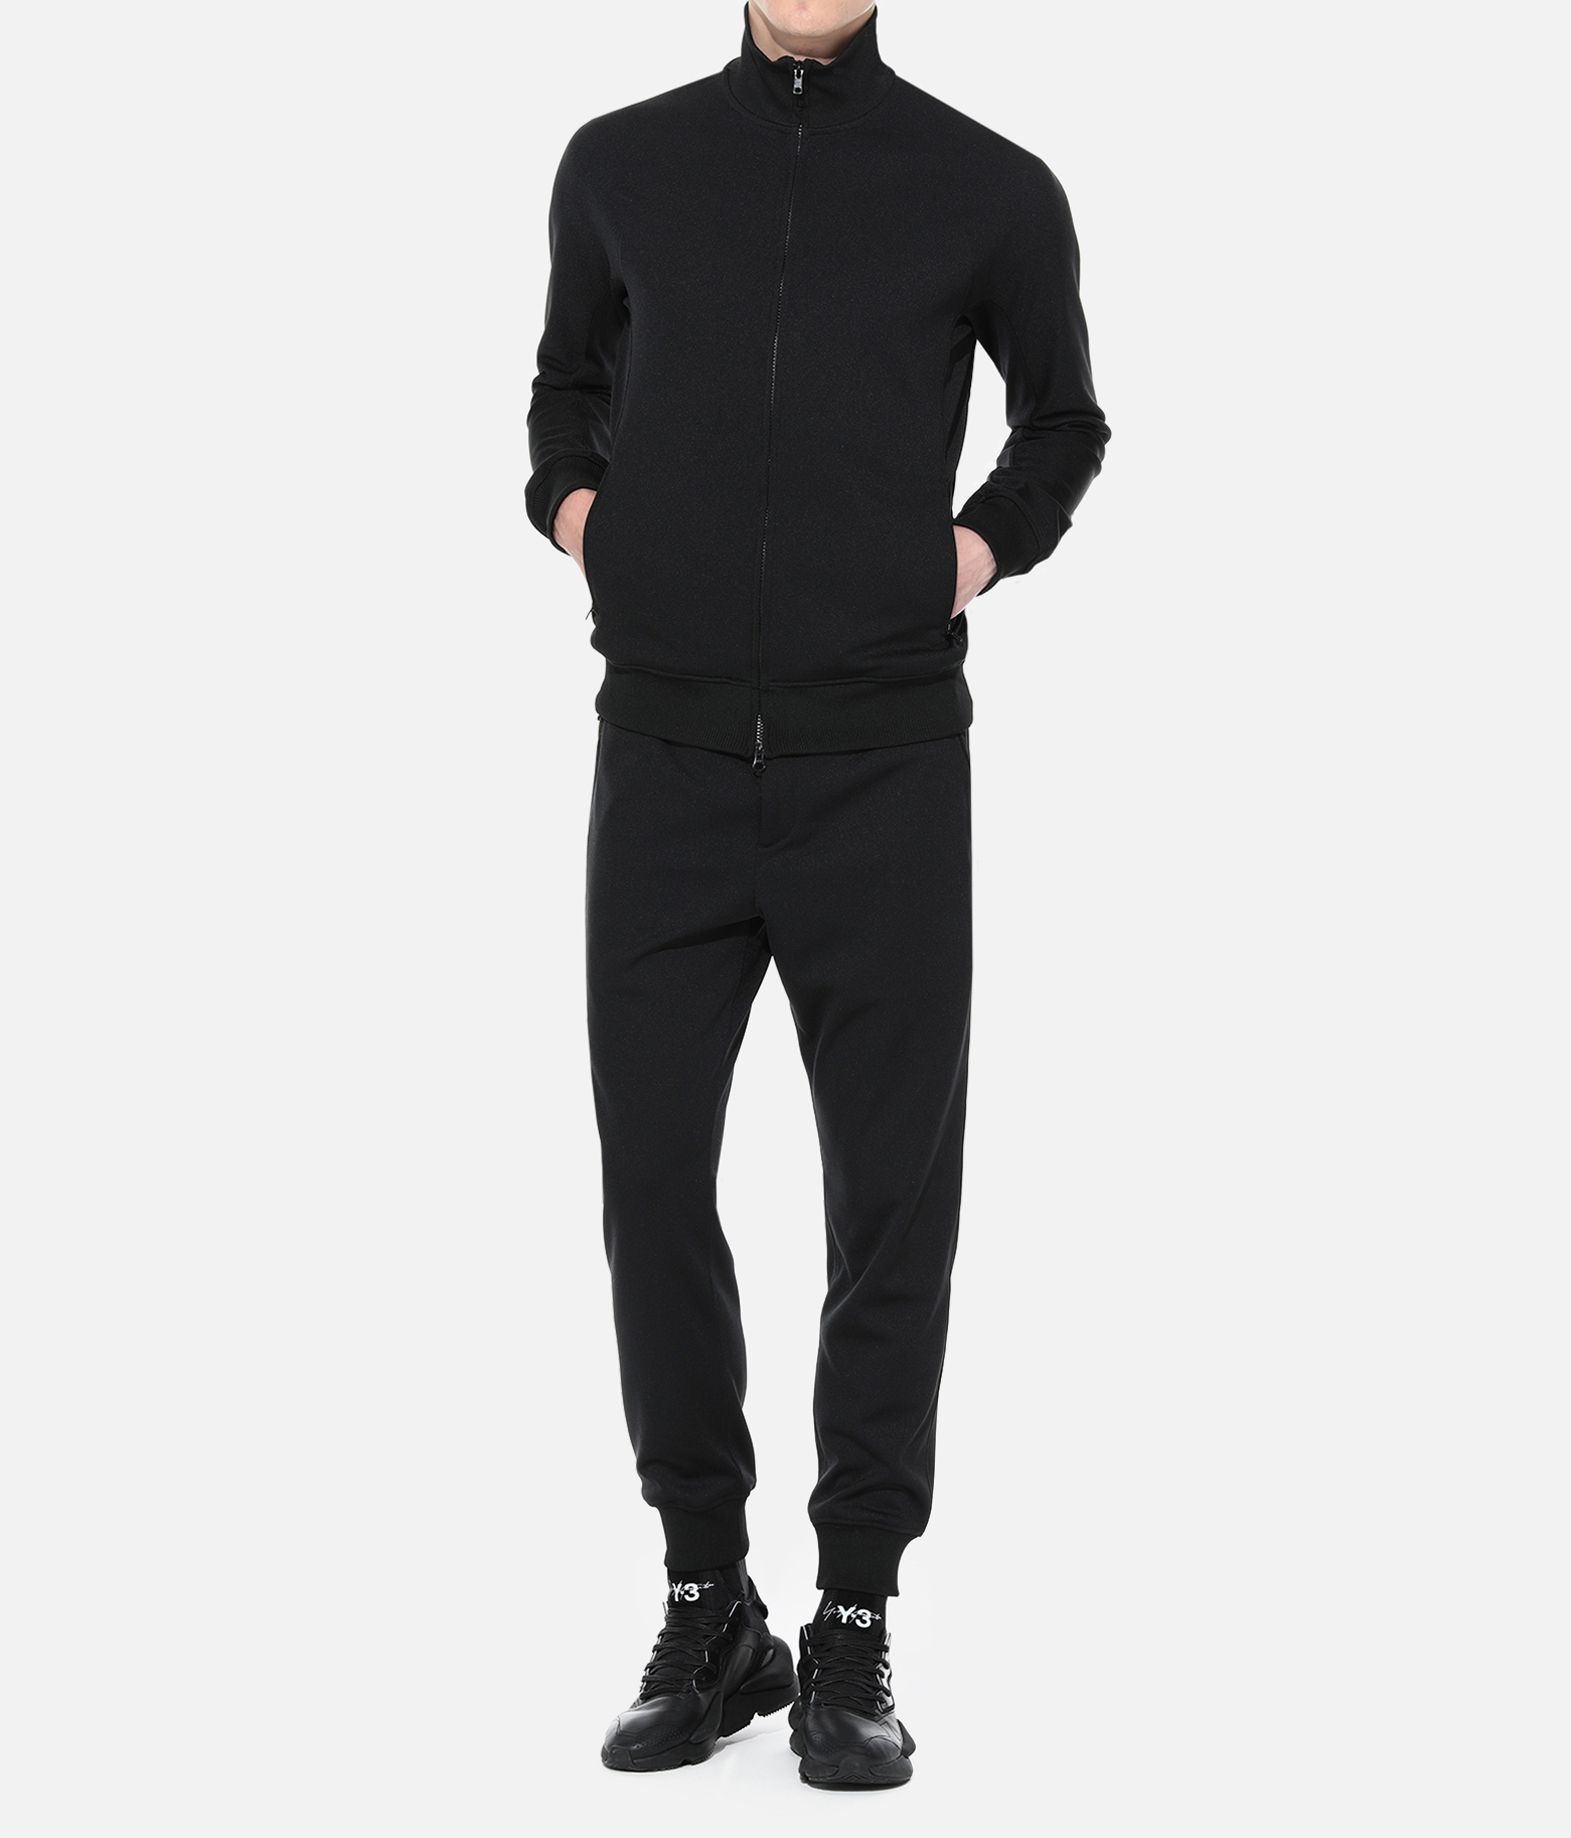 Y-3 Y-3 Classic Track Pants Track pant Man a